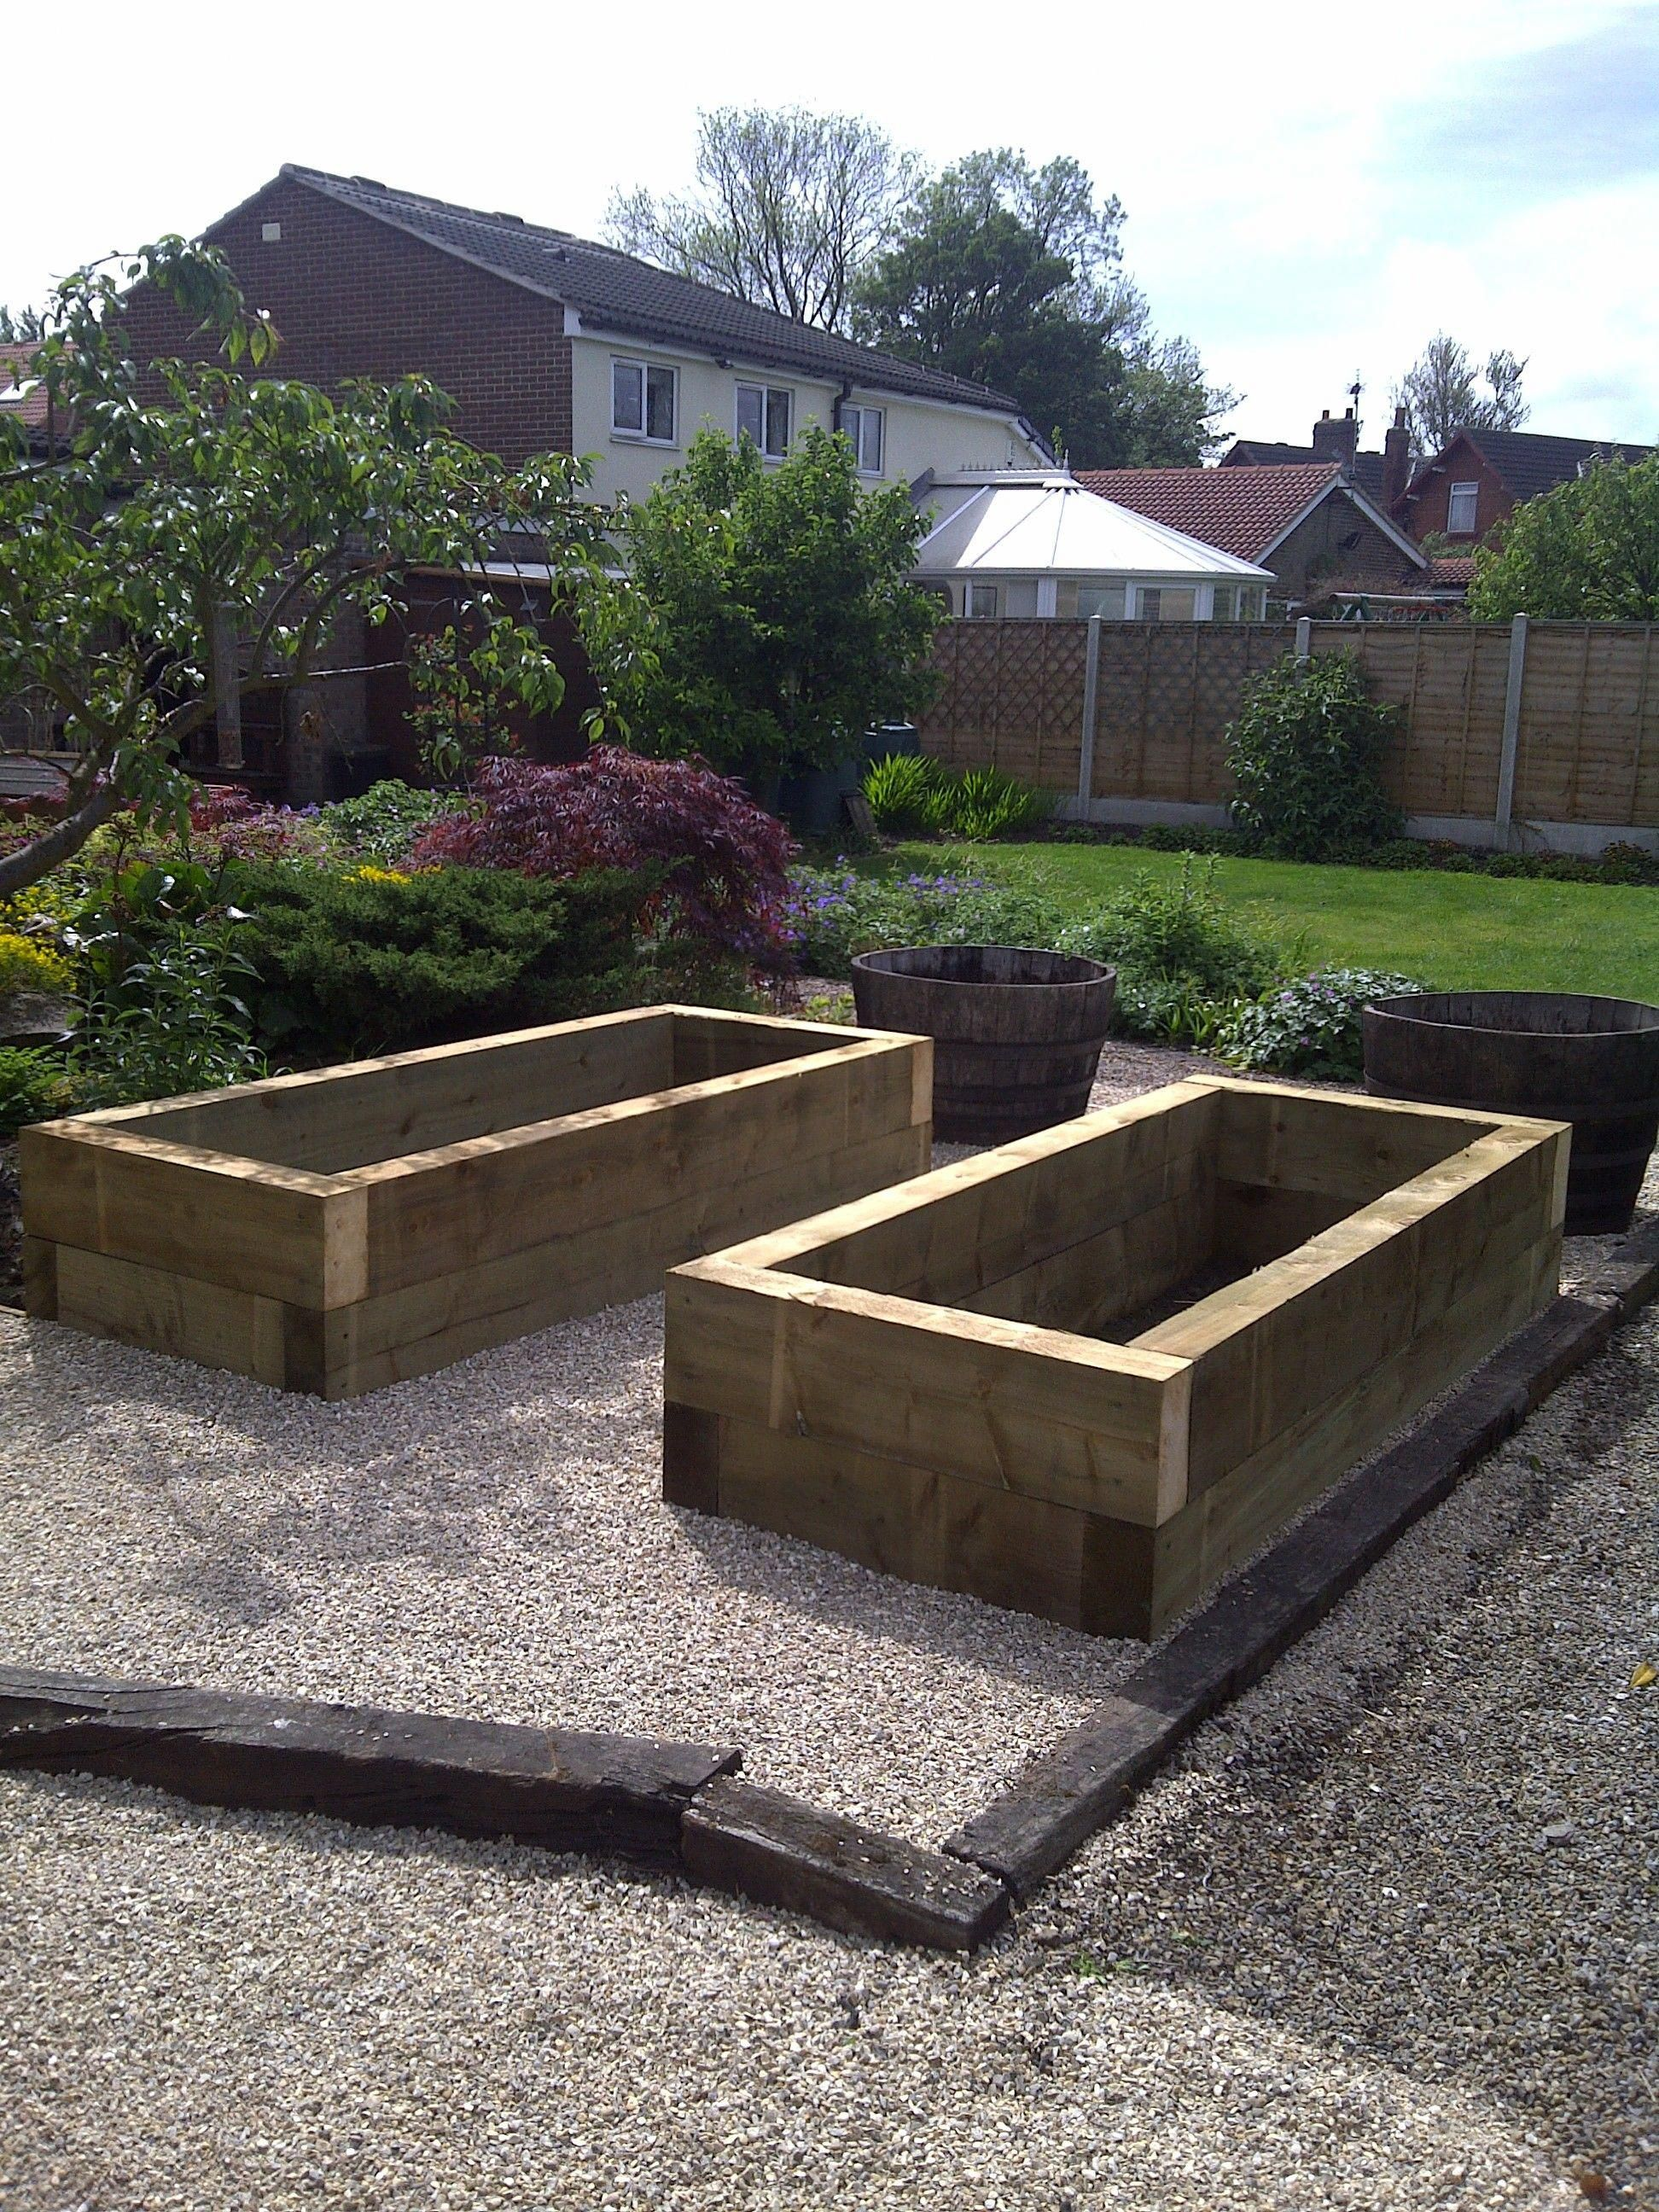 Sleeper Raised Beds For Veg Growing Making Raised Garden Beds Vegetable Garden Raised Beds Garden Beds